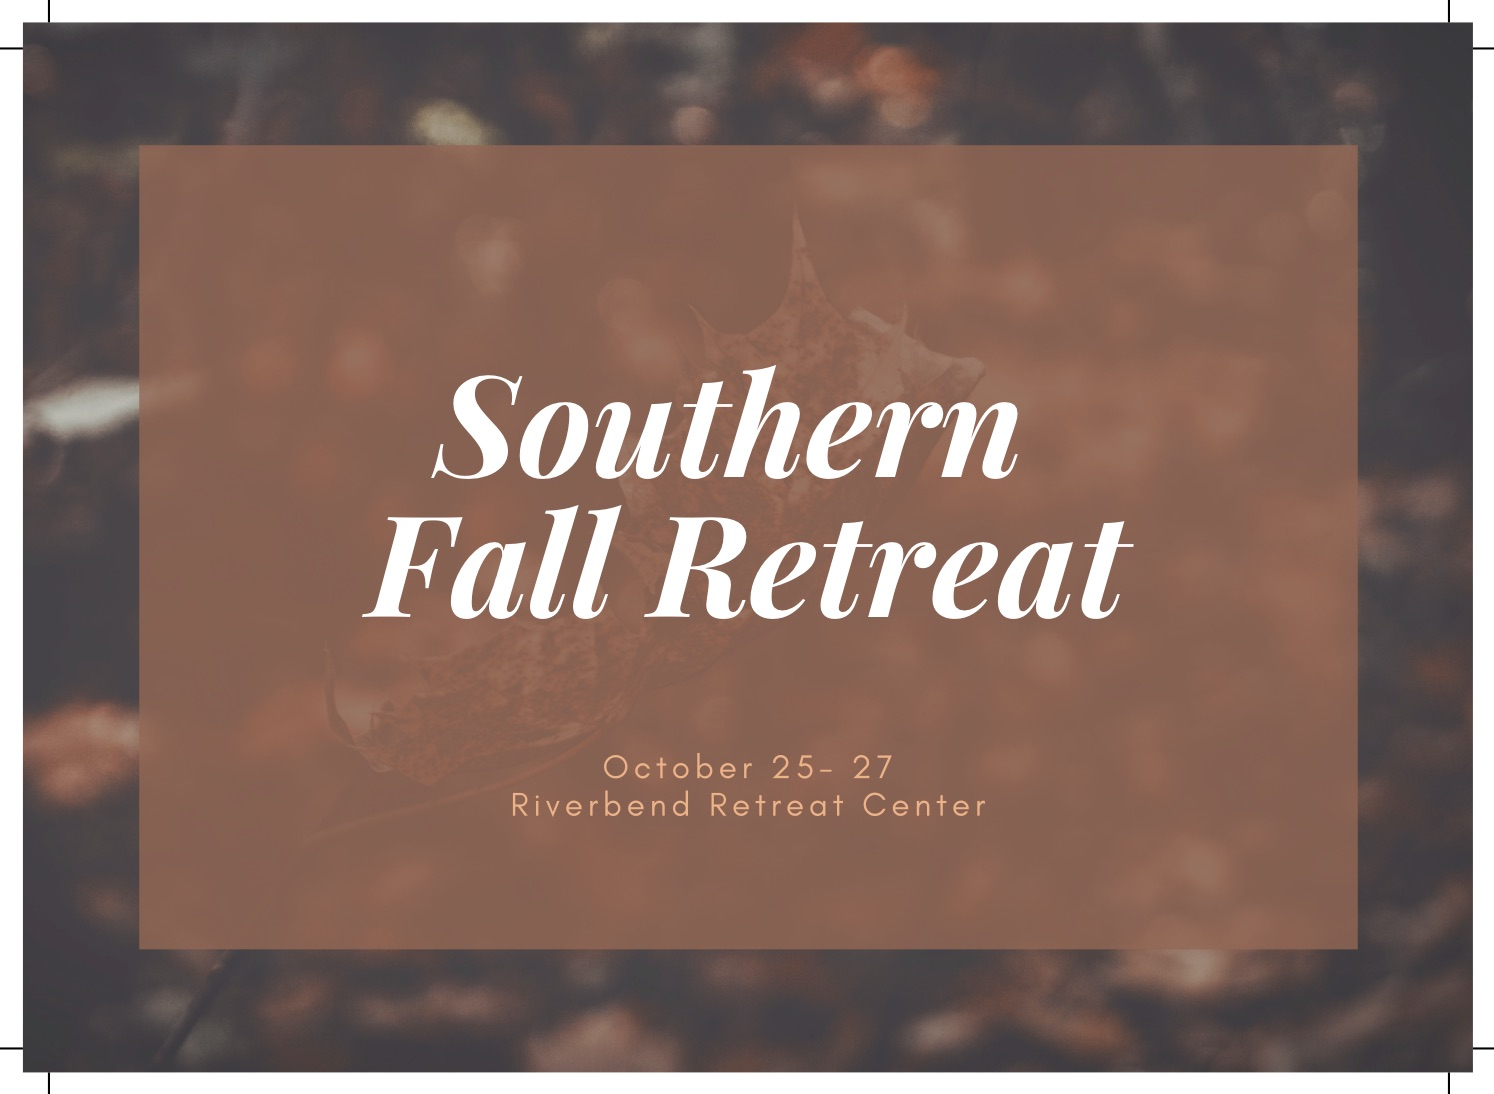 Southern Fall Retreat